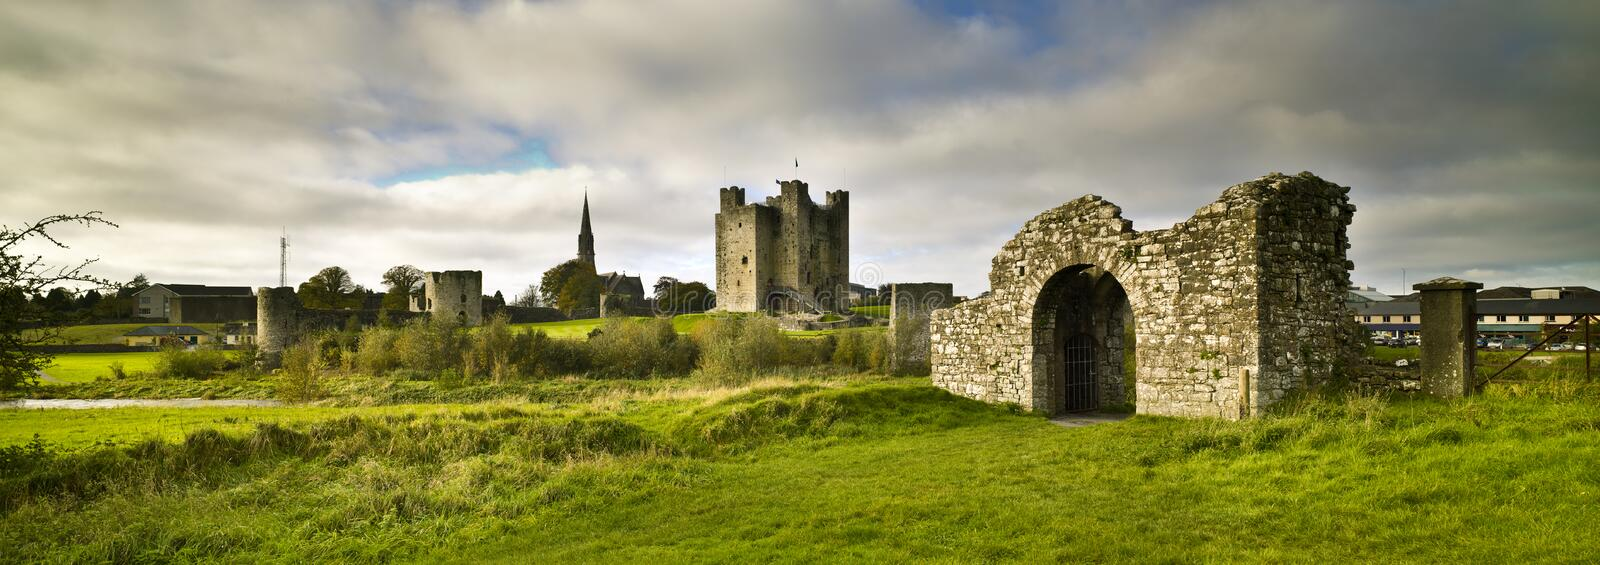 Trim Castle Trim, County Meath, Ireland. Morning. Trim Castle Trim, County Meath, Ireland. Green grass and cloudy sky. Morning stock images